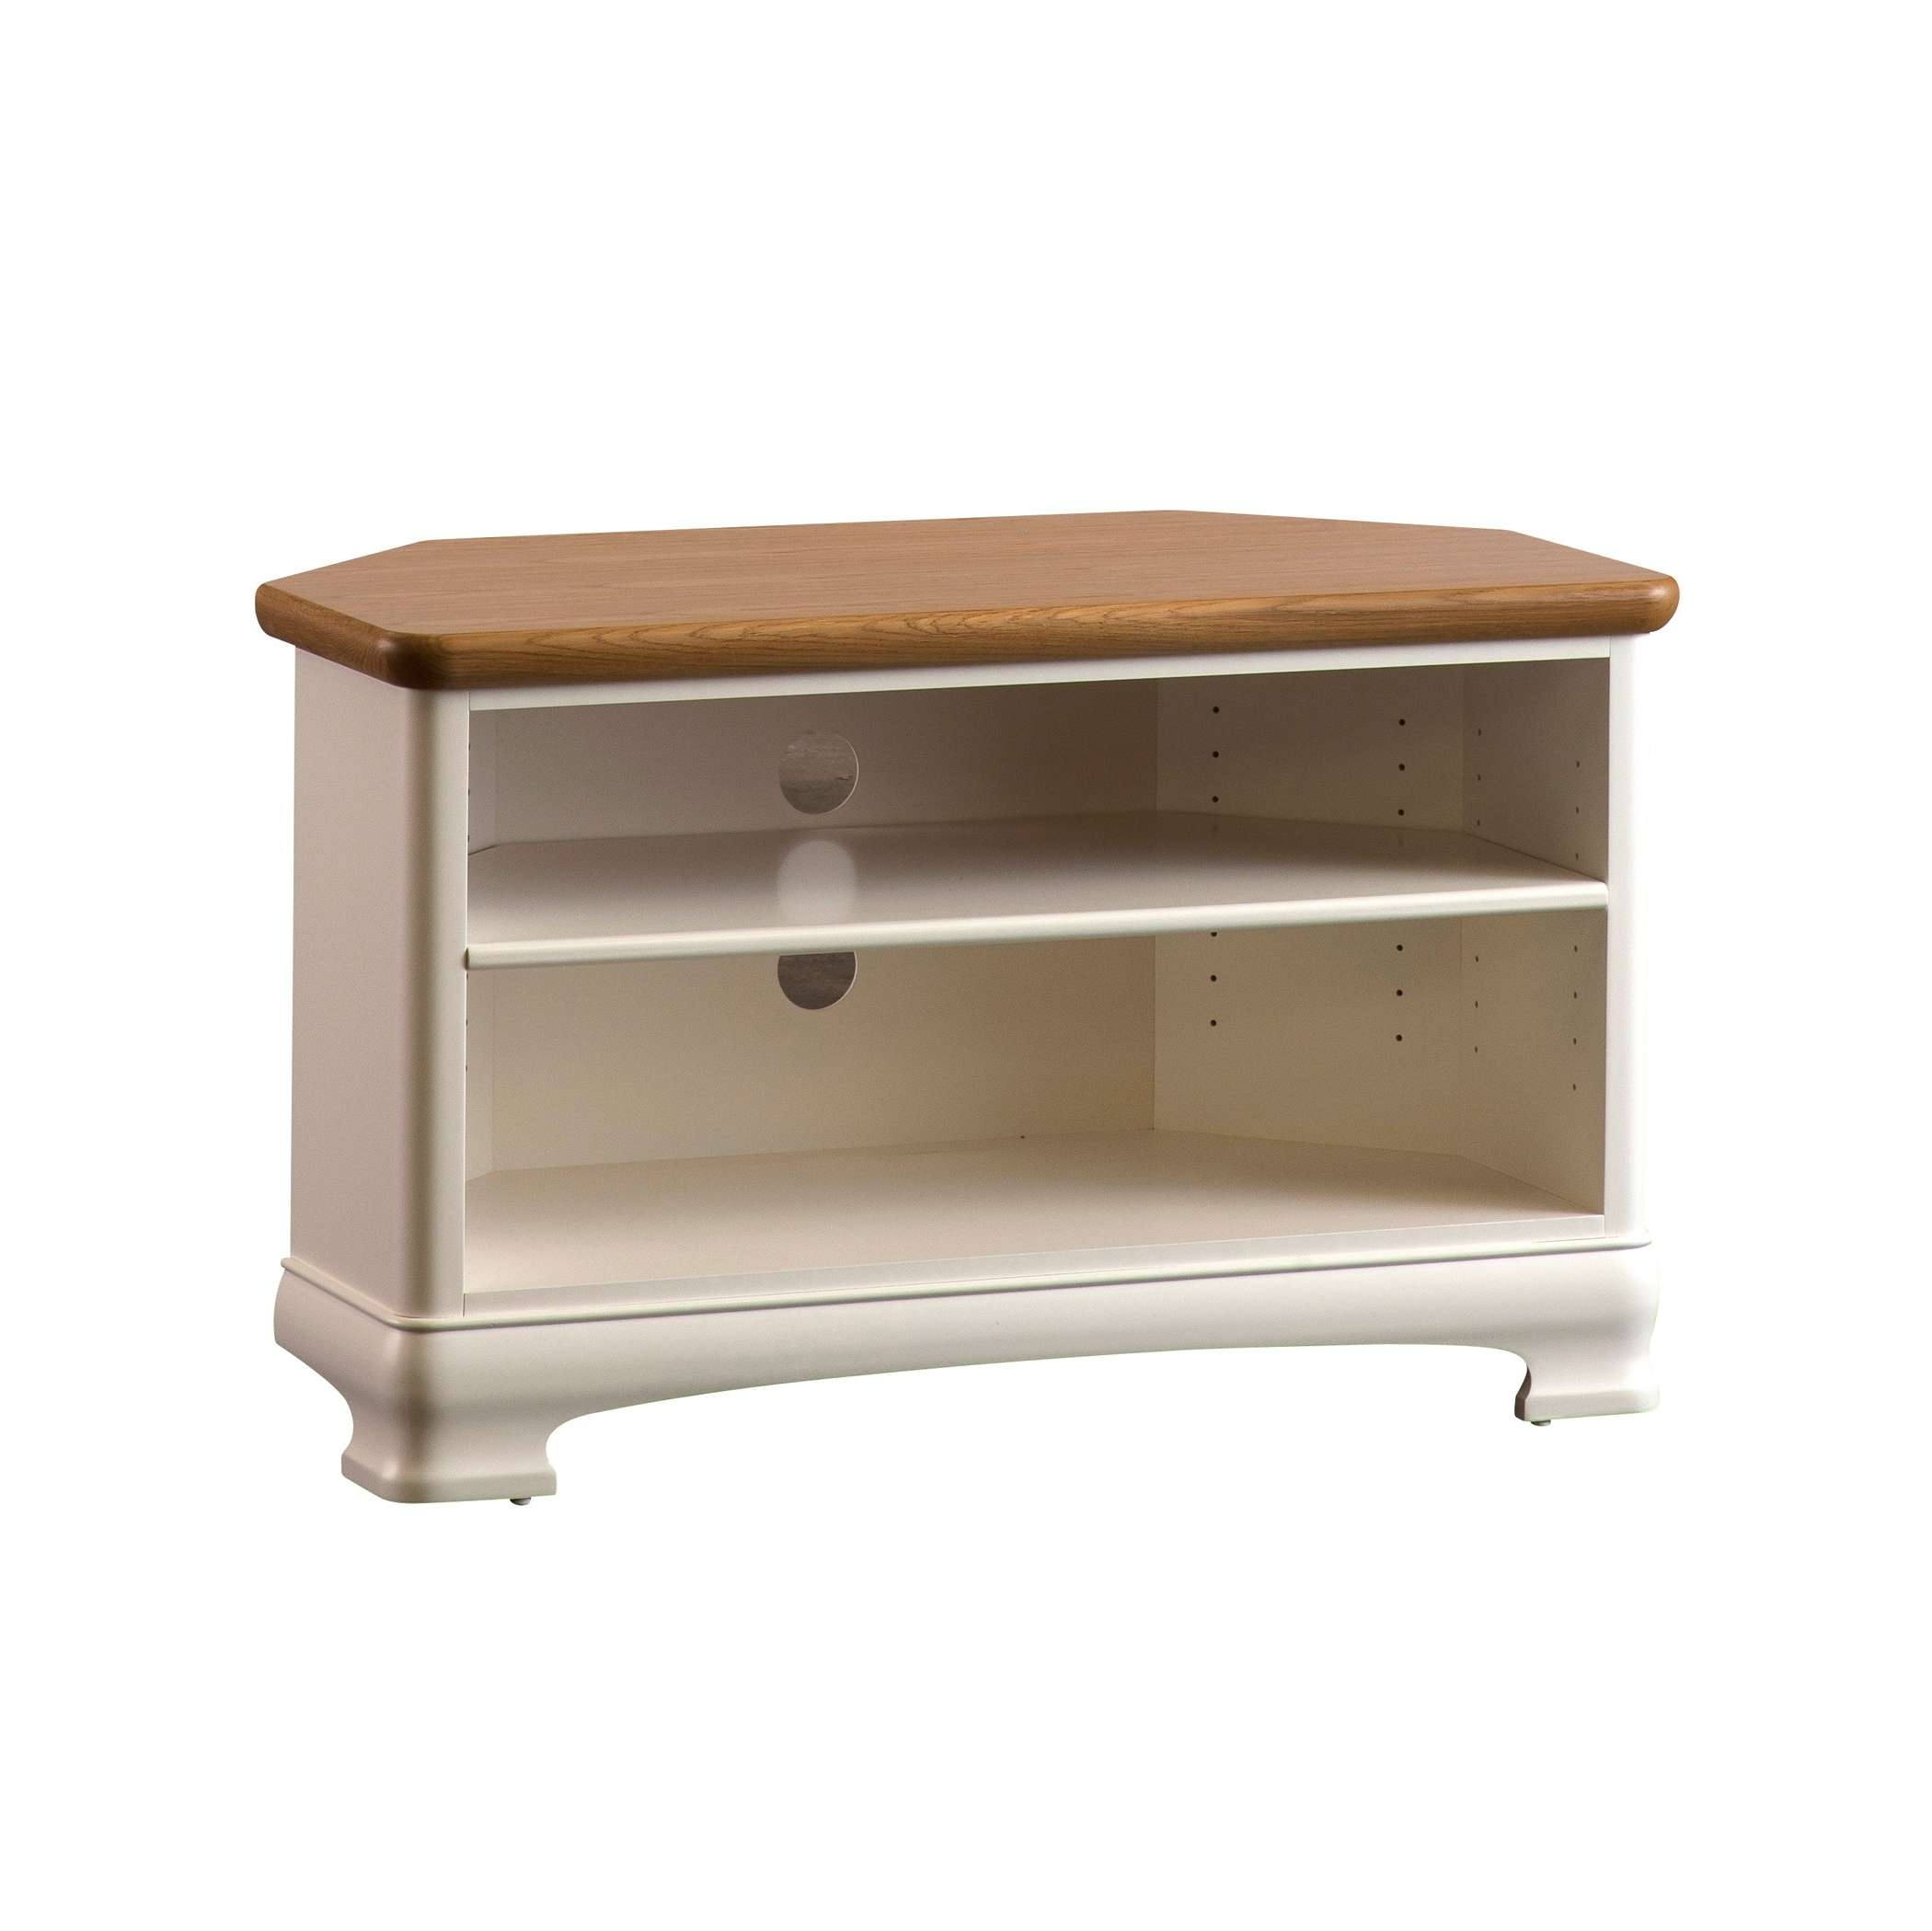 Painted Corner Tv Stand | Gola Furniture Uk For Tv Stands For Corner (View 10 of 15)